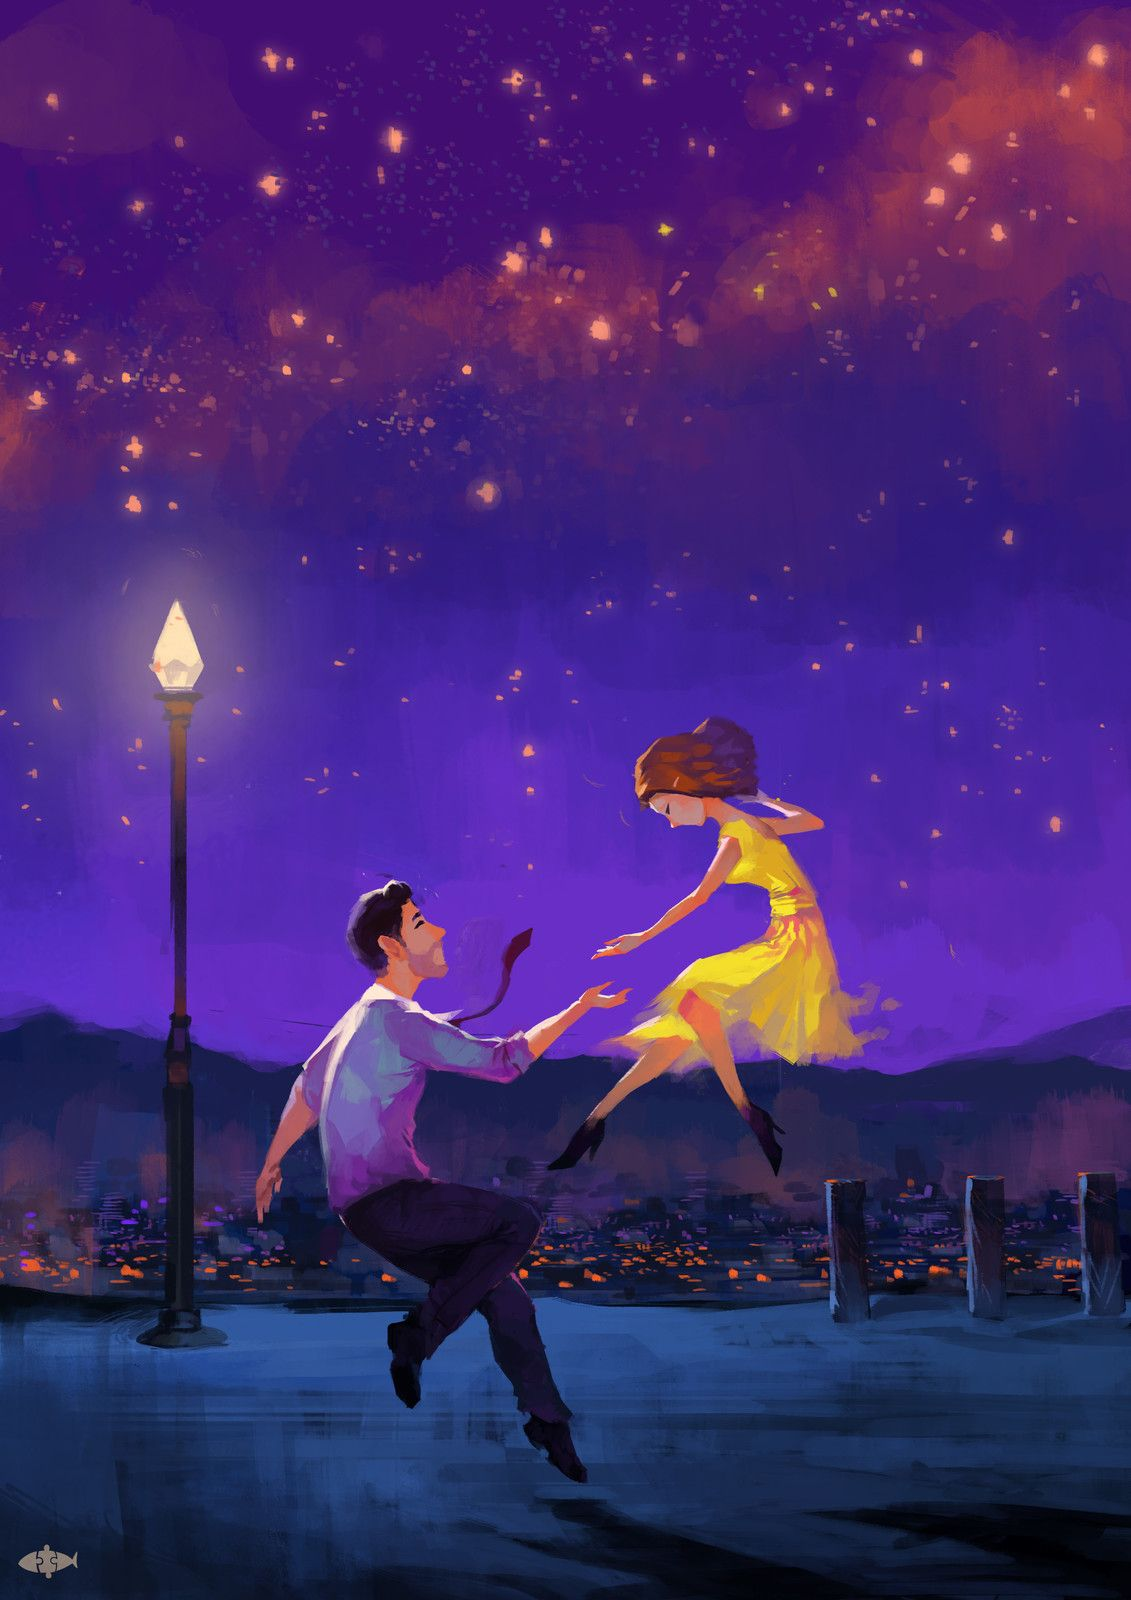 lalaland, Tu Na on ArtStation at https://www.artstation ...